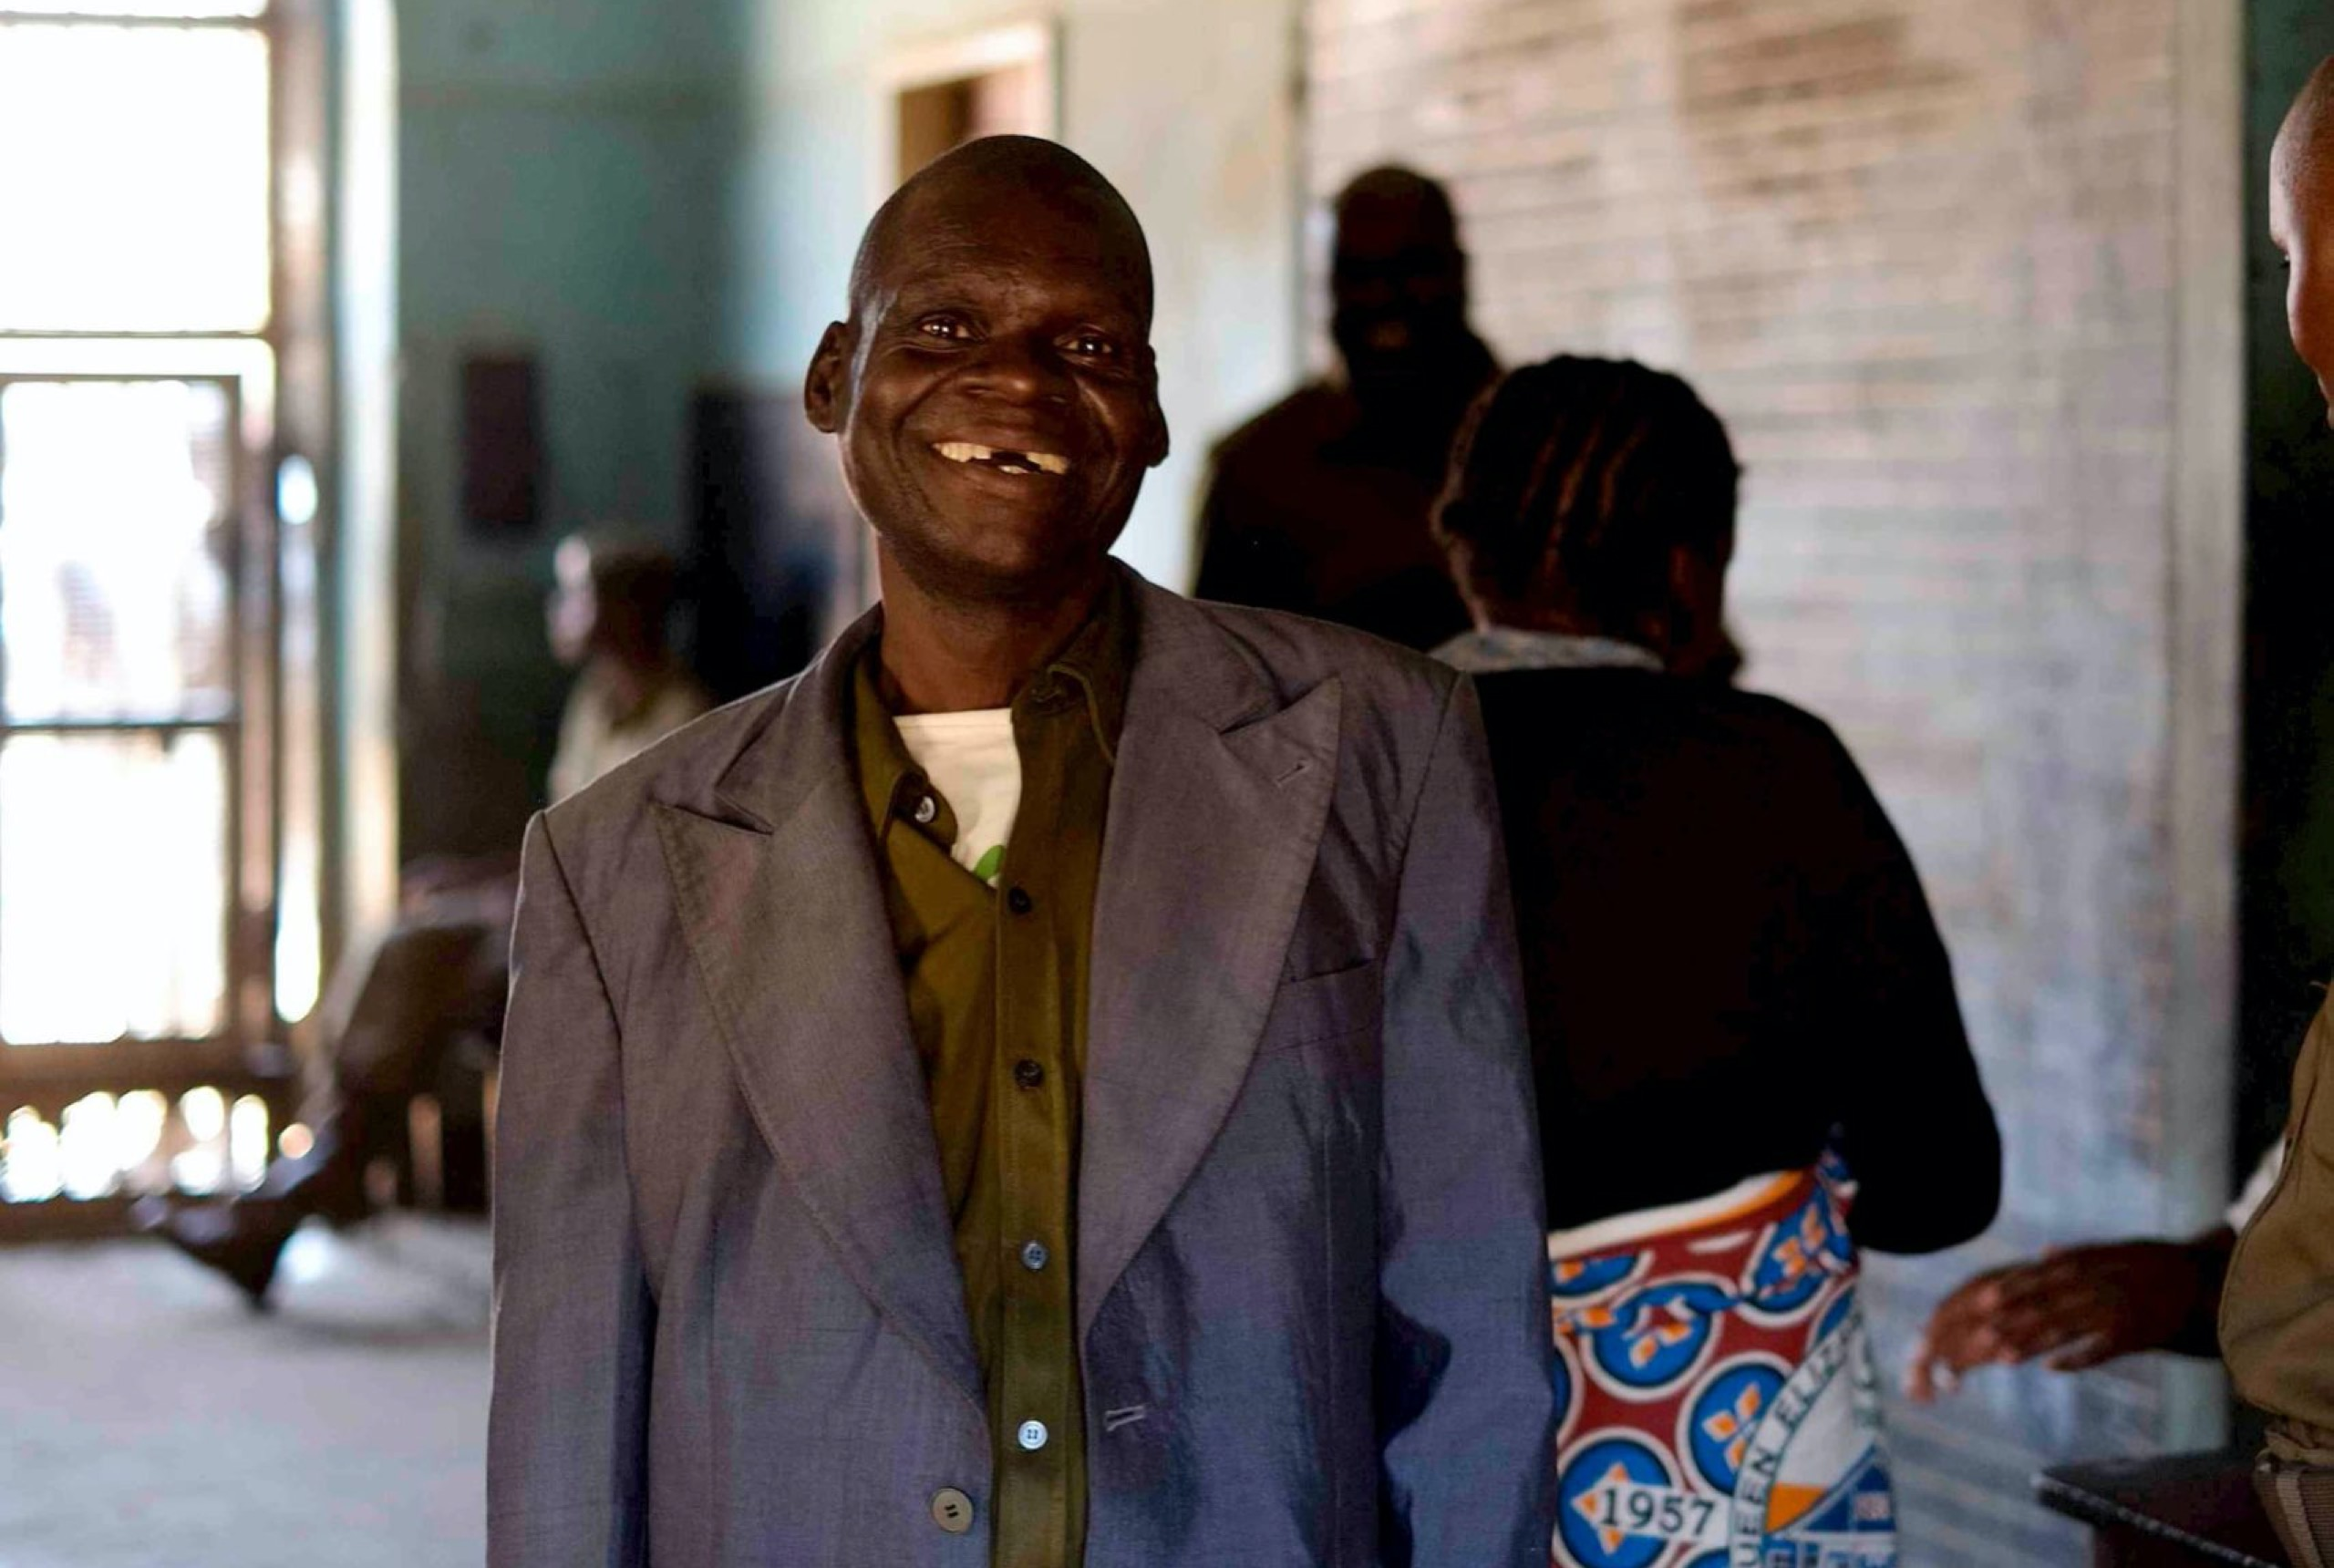 A man in standing and smiling at the camera.